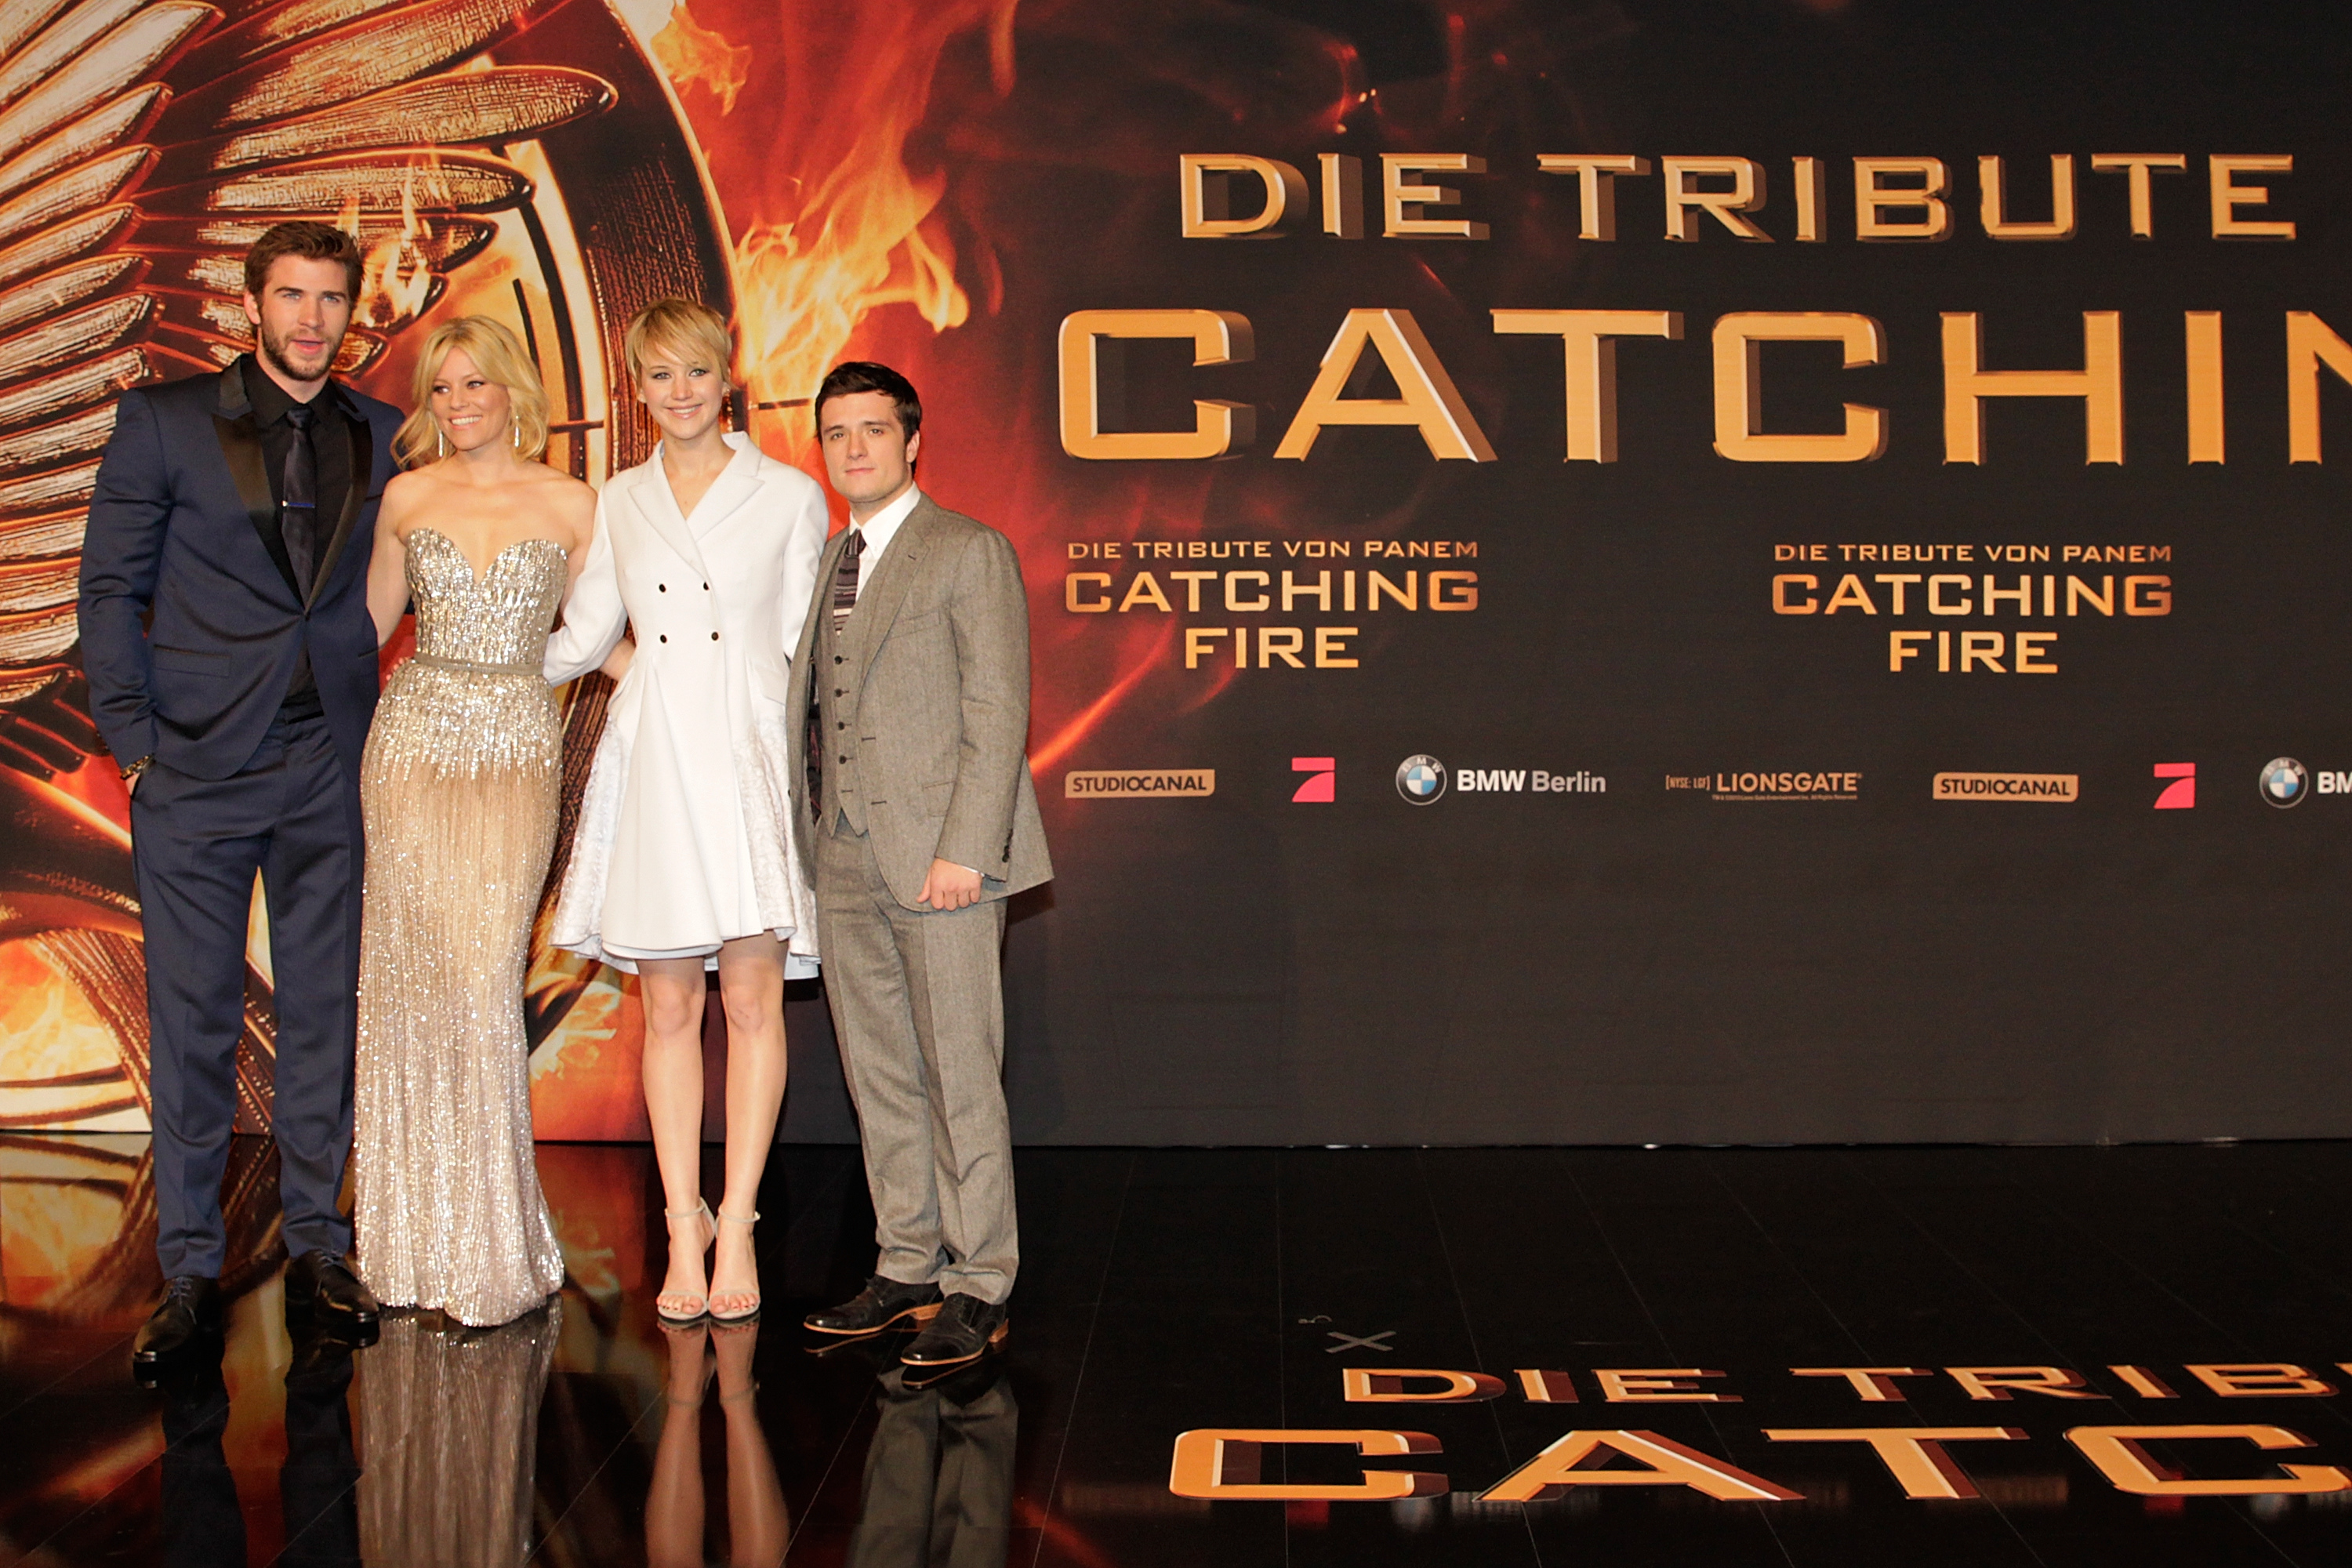 Liam Hemsworth, Elizabeth Banks, Jennifer Lawrence and Josh Hutcherson attend the German premiere of the film The Hunger Games - Catching Fire on Nov. 12, 2013 in Berlin.